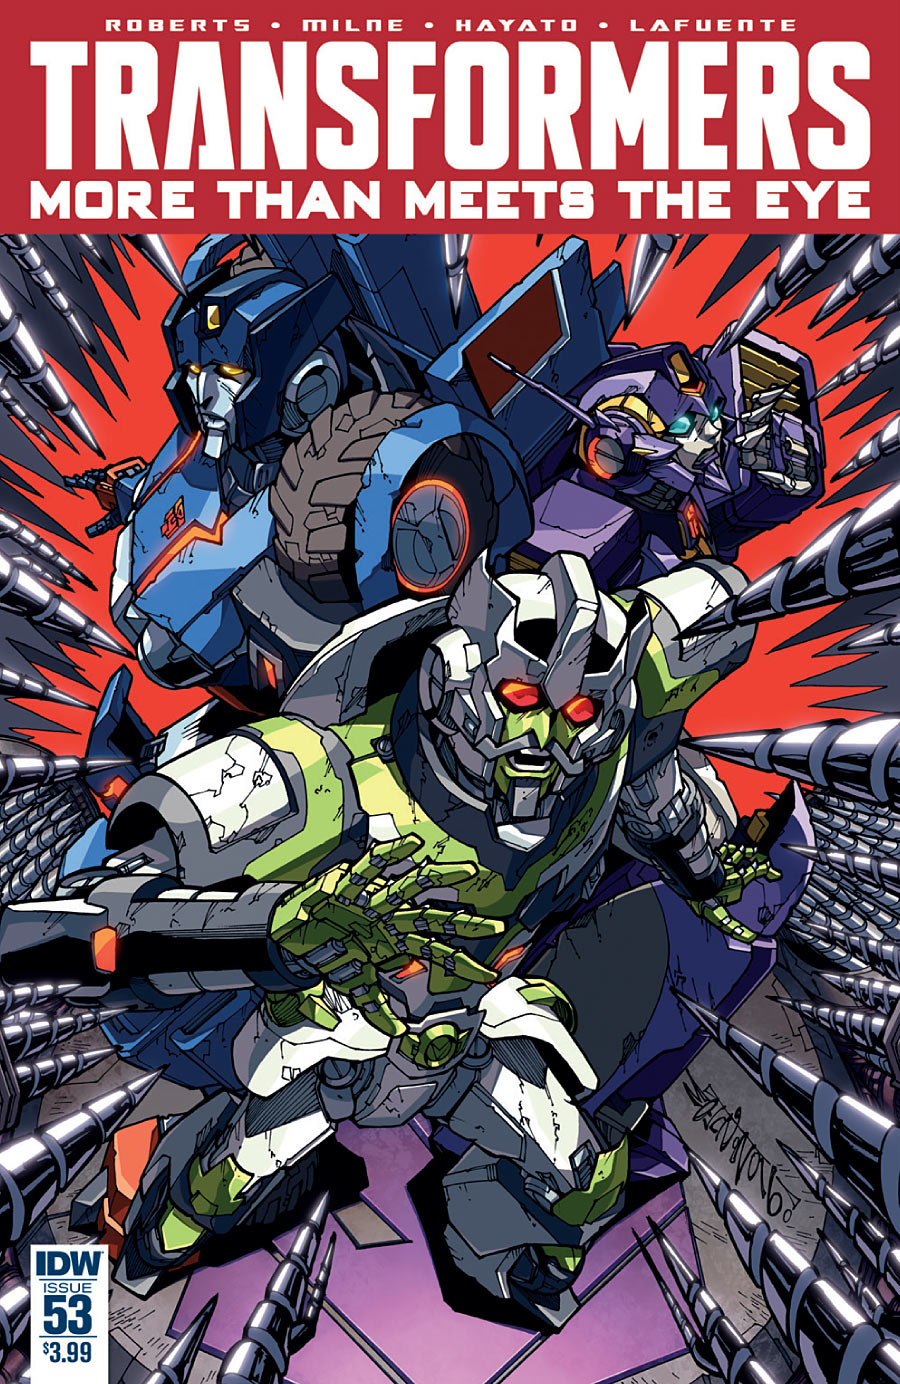 The Transformers: More than Meets the Eye #53